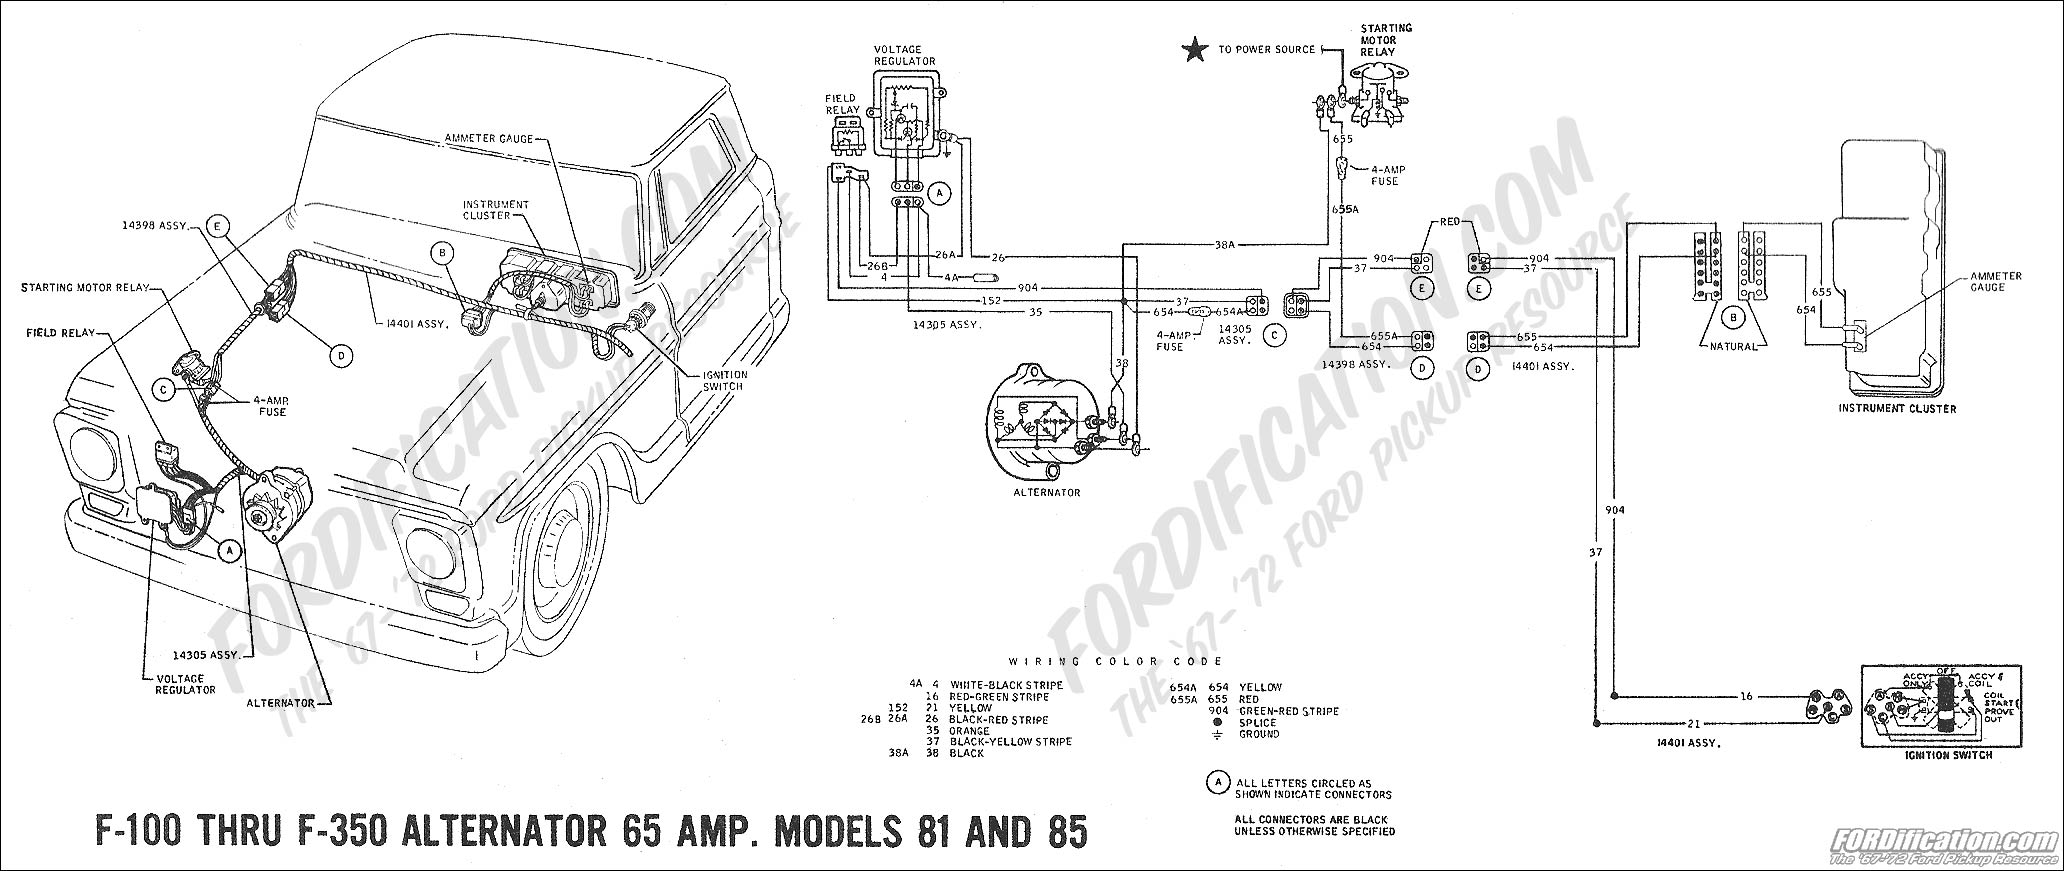 1983 ford f150 radio wiring diagram cat 5 telephone 92 alternator somurich